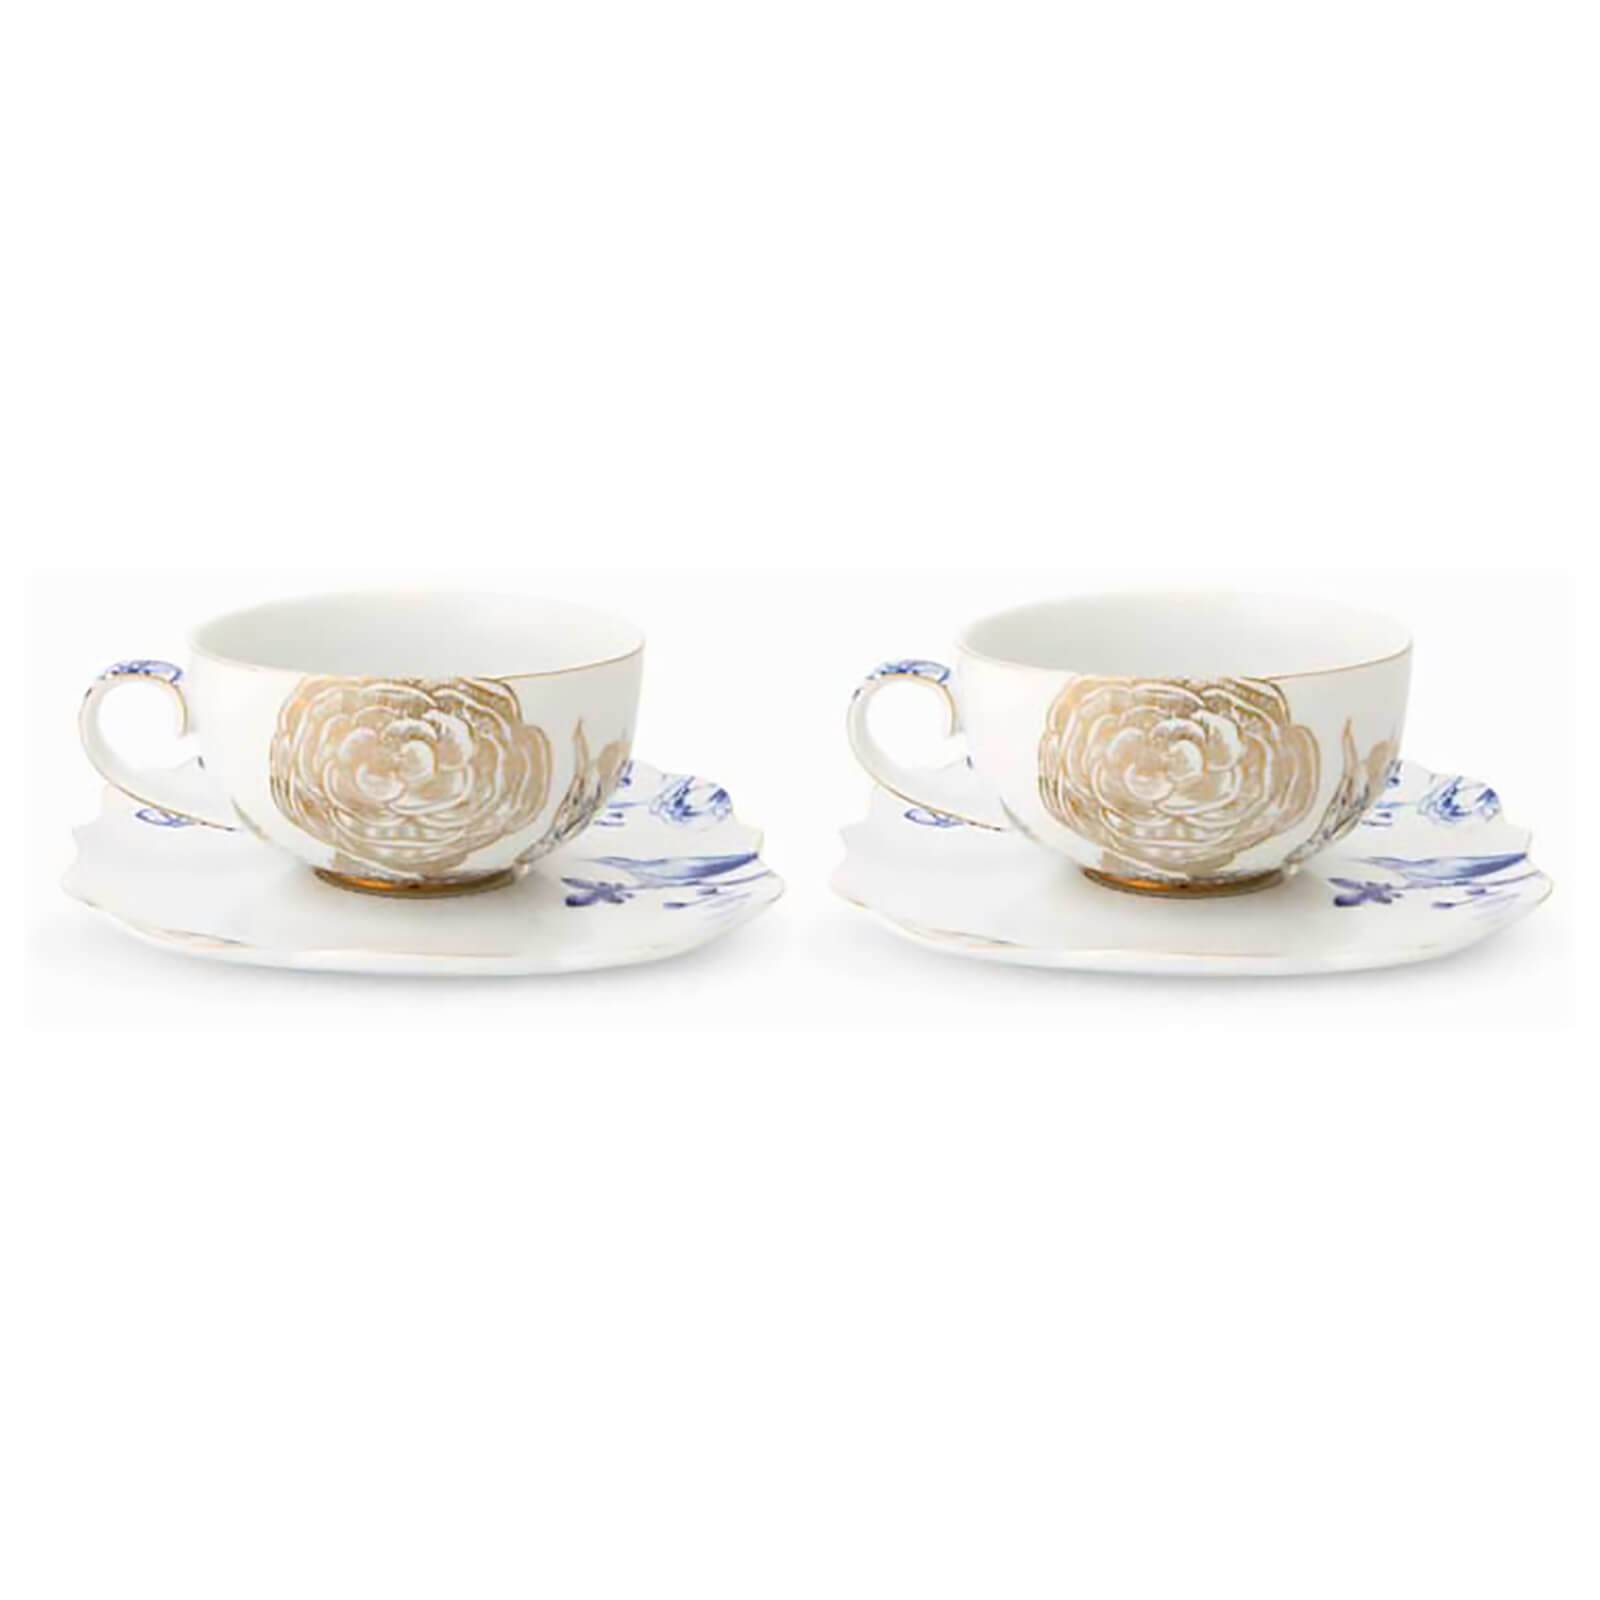 Pip Studio Royal Tea Cups and Saucers - White (Set of 2)